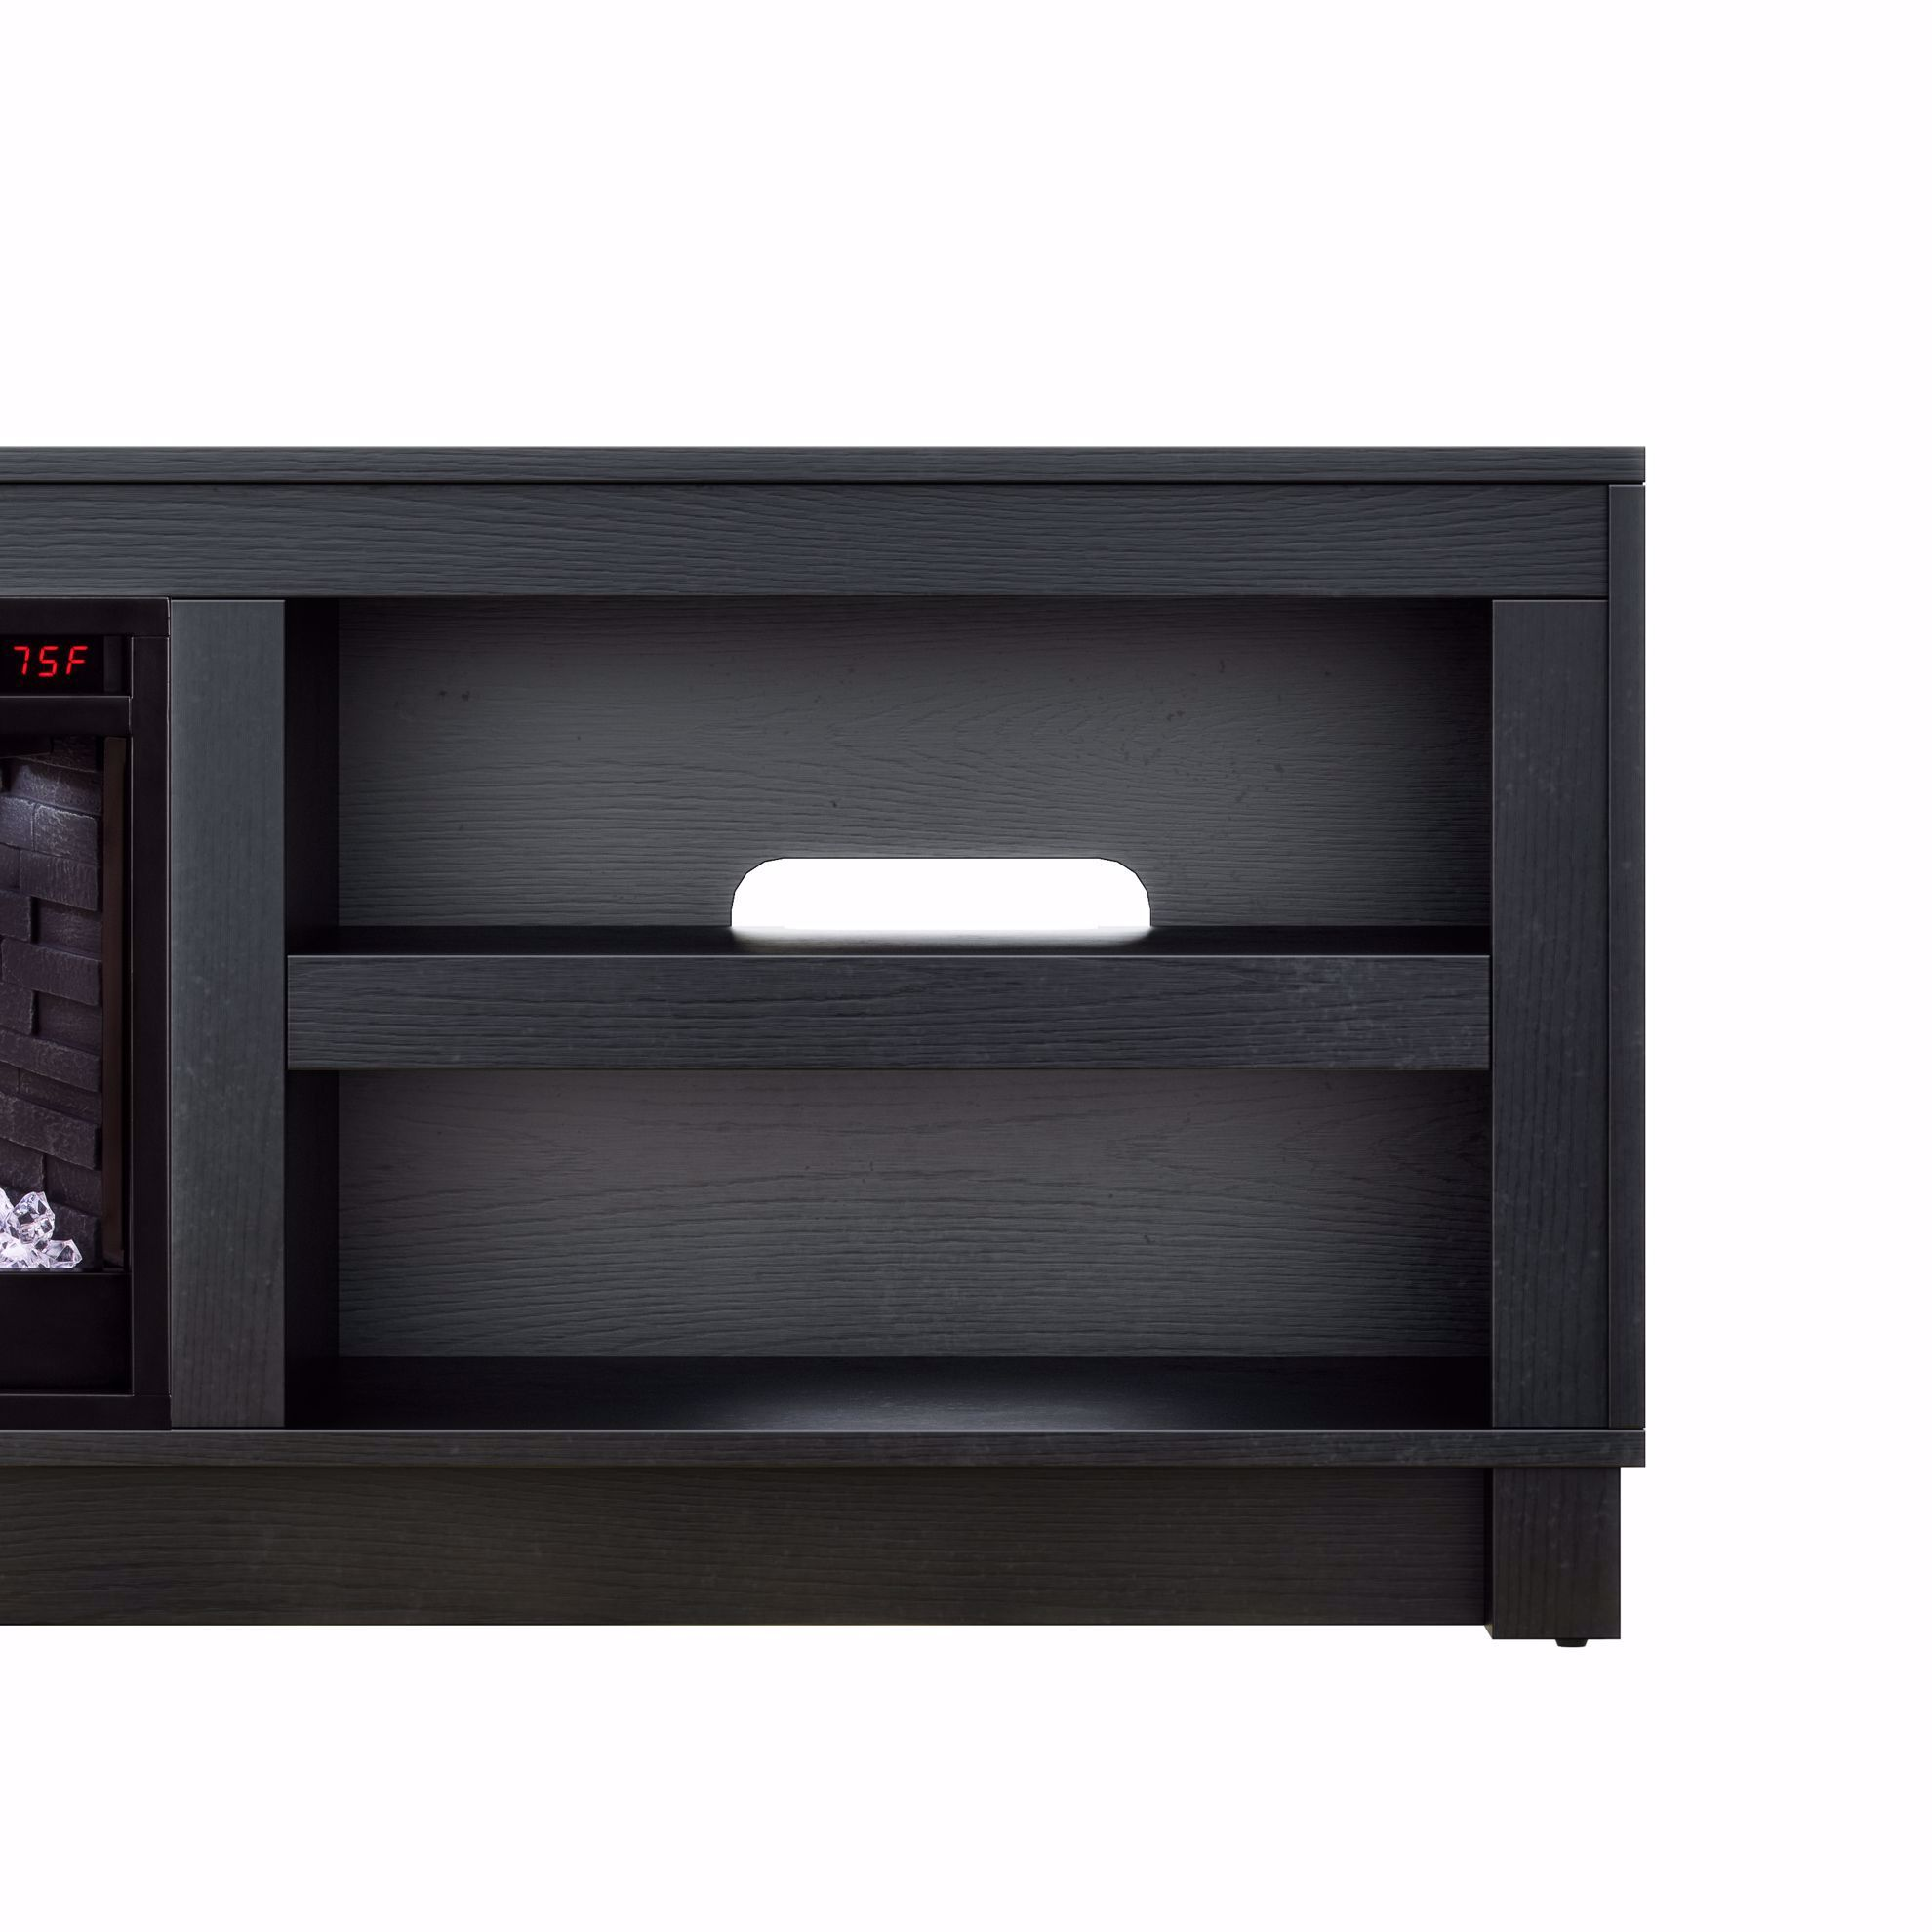 Picture of Bushwick Black TV Stand with Fireplace